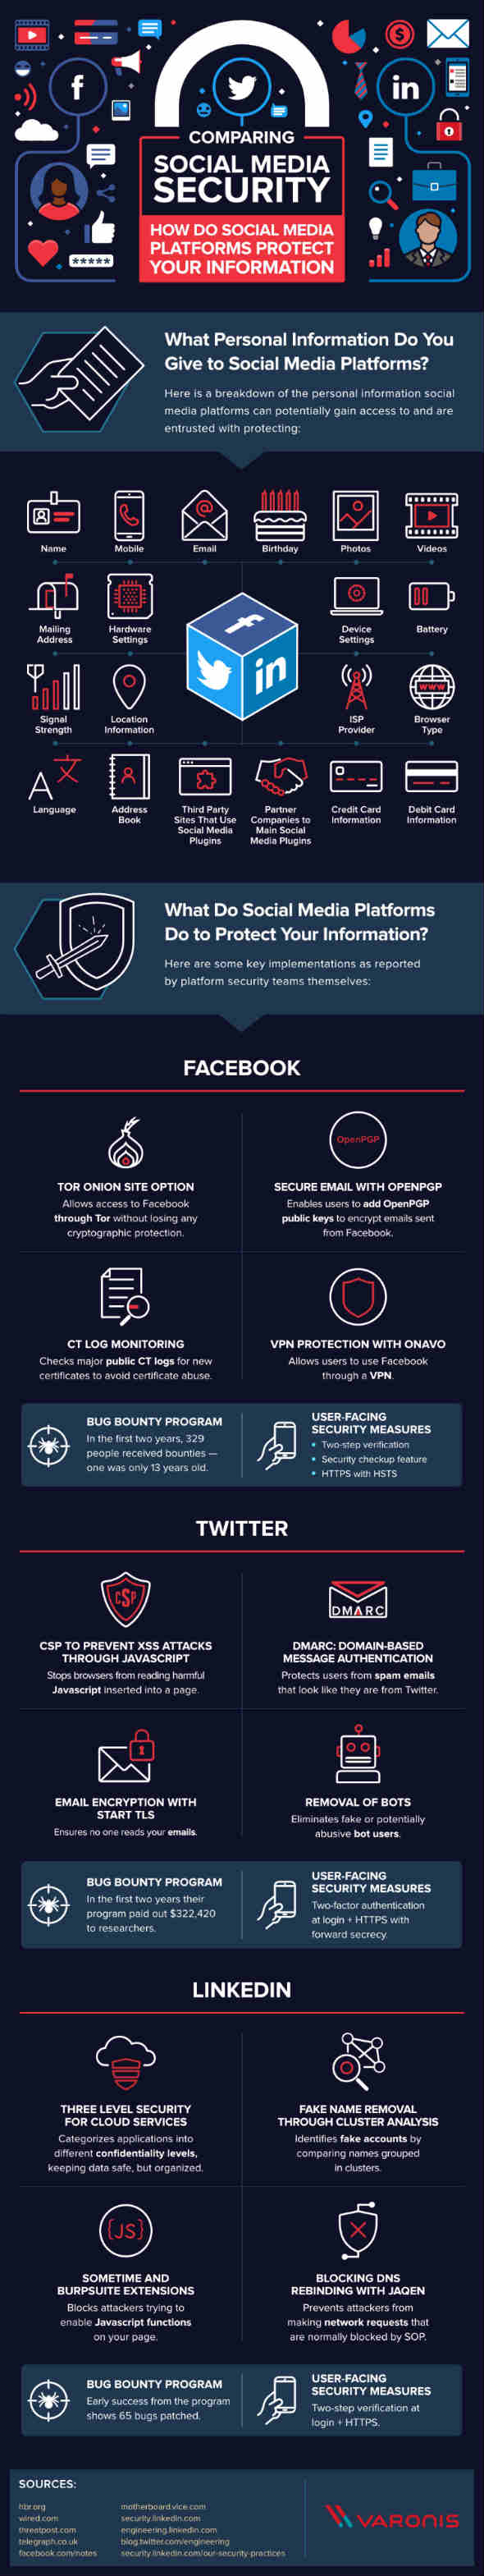 comparing social media security